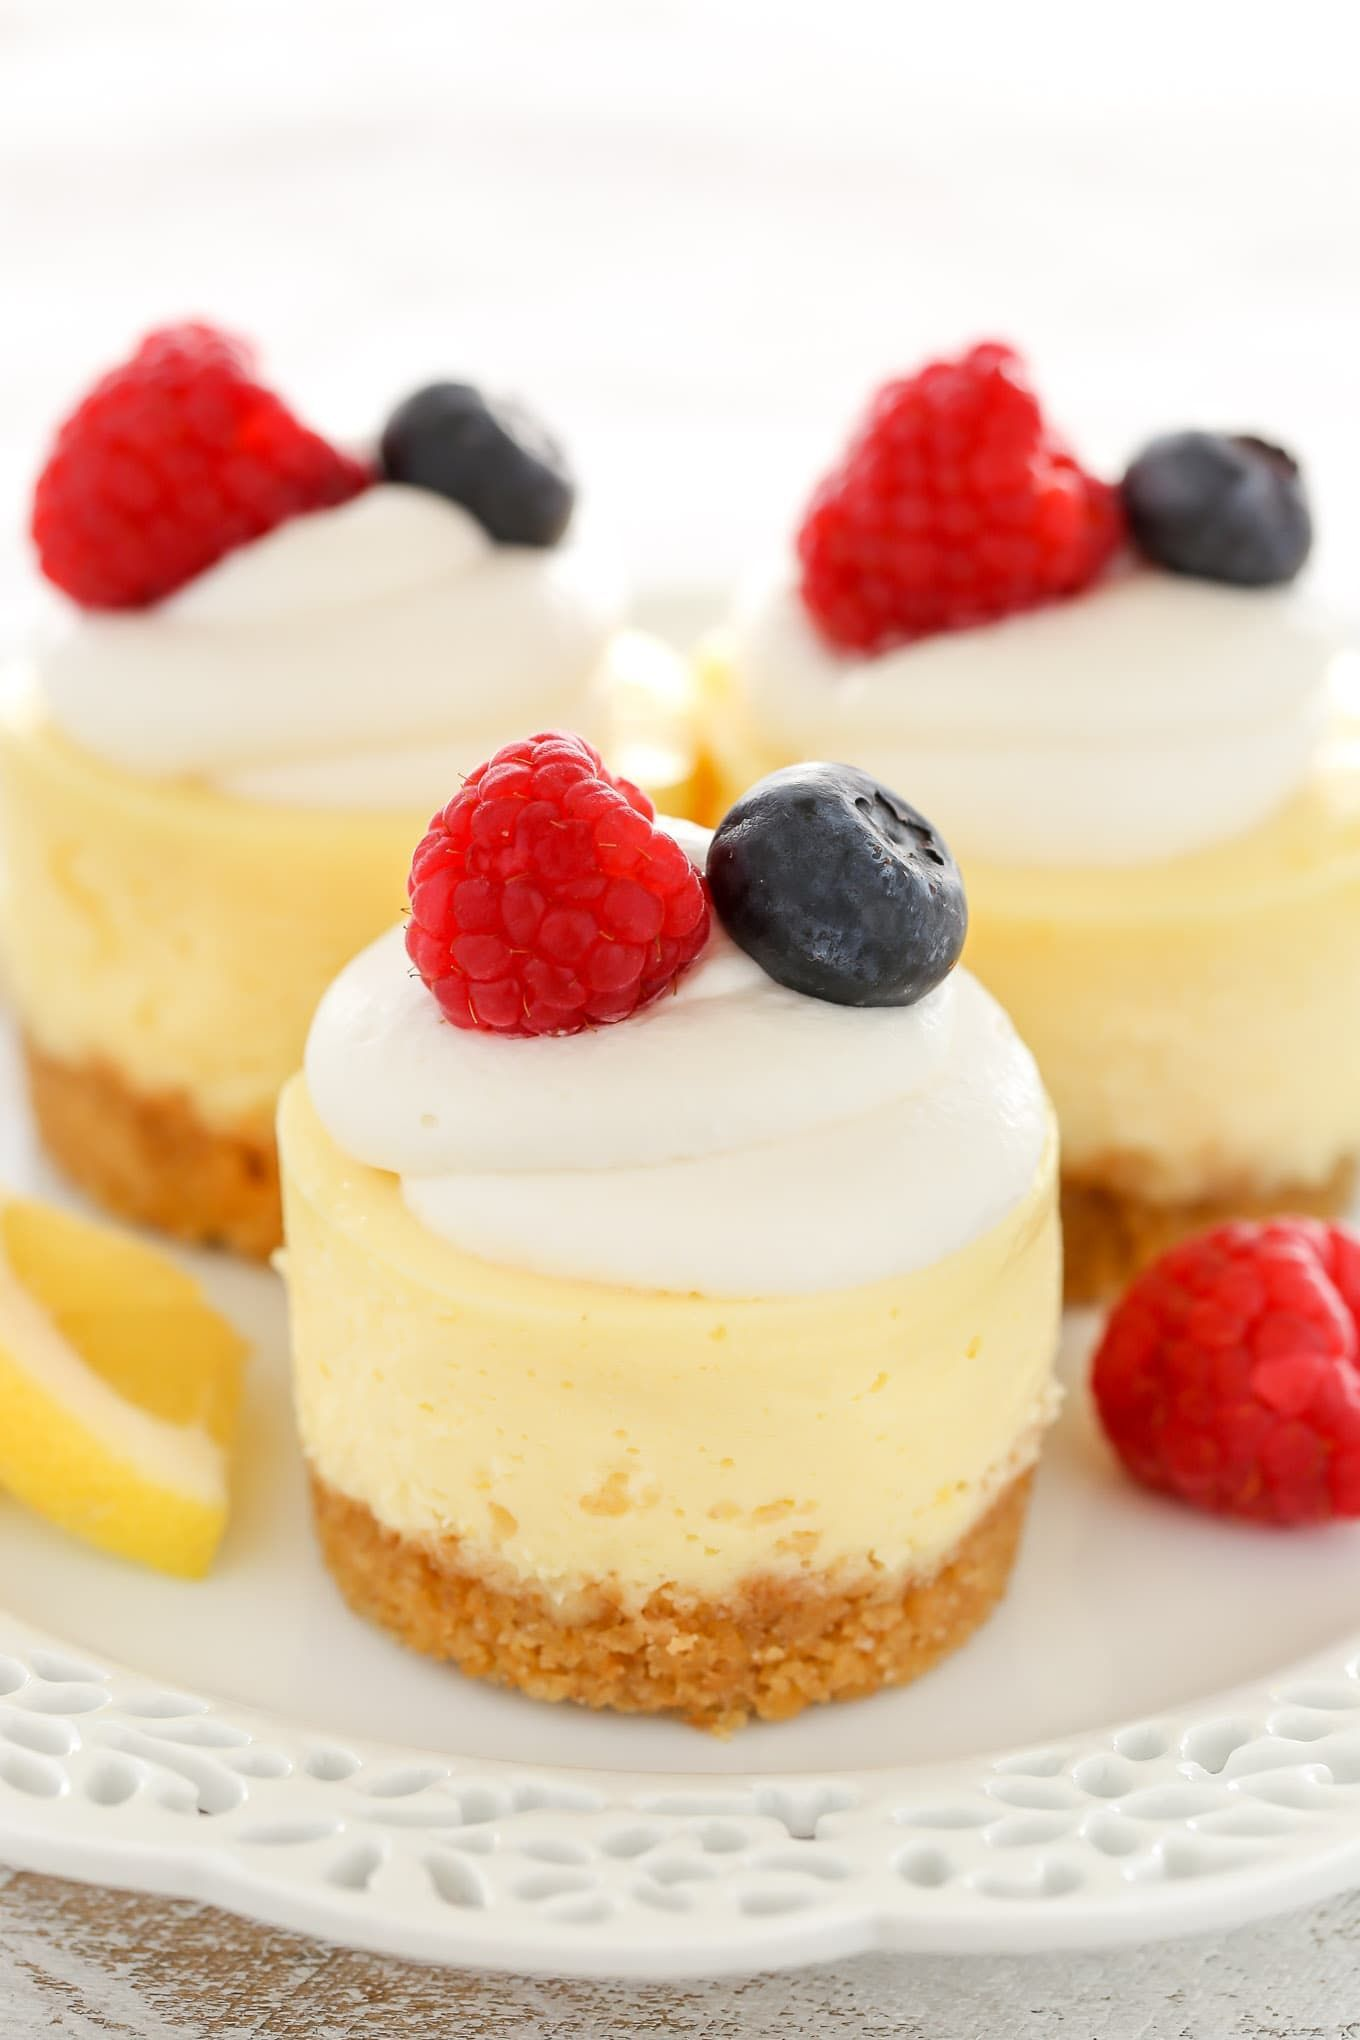 These Mini Lemon Cheesecakes feature an easy homemade graham cracker crust topped with a smooth and creamy lemon cheesecake filling. Top them with some fresh whipped cream and berries for an easy dessert everyone will love! #homemadegrahamcrackercrust These Mini Lemon Cheesecakes feature an easy homemade graham cracker crust topped with a smooth and creamy lemon cheesecake filling. Top them with some fresh whipped cream and berries for an easy dessert everyone will love! #homemadegrahamcrackercrust